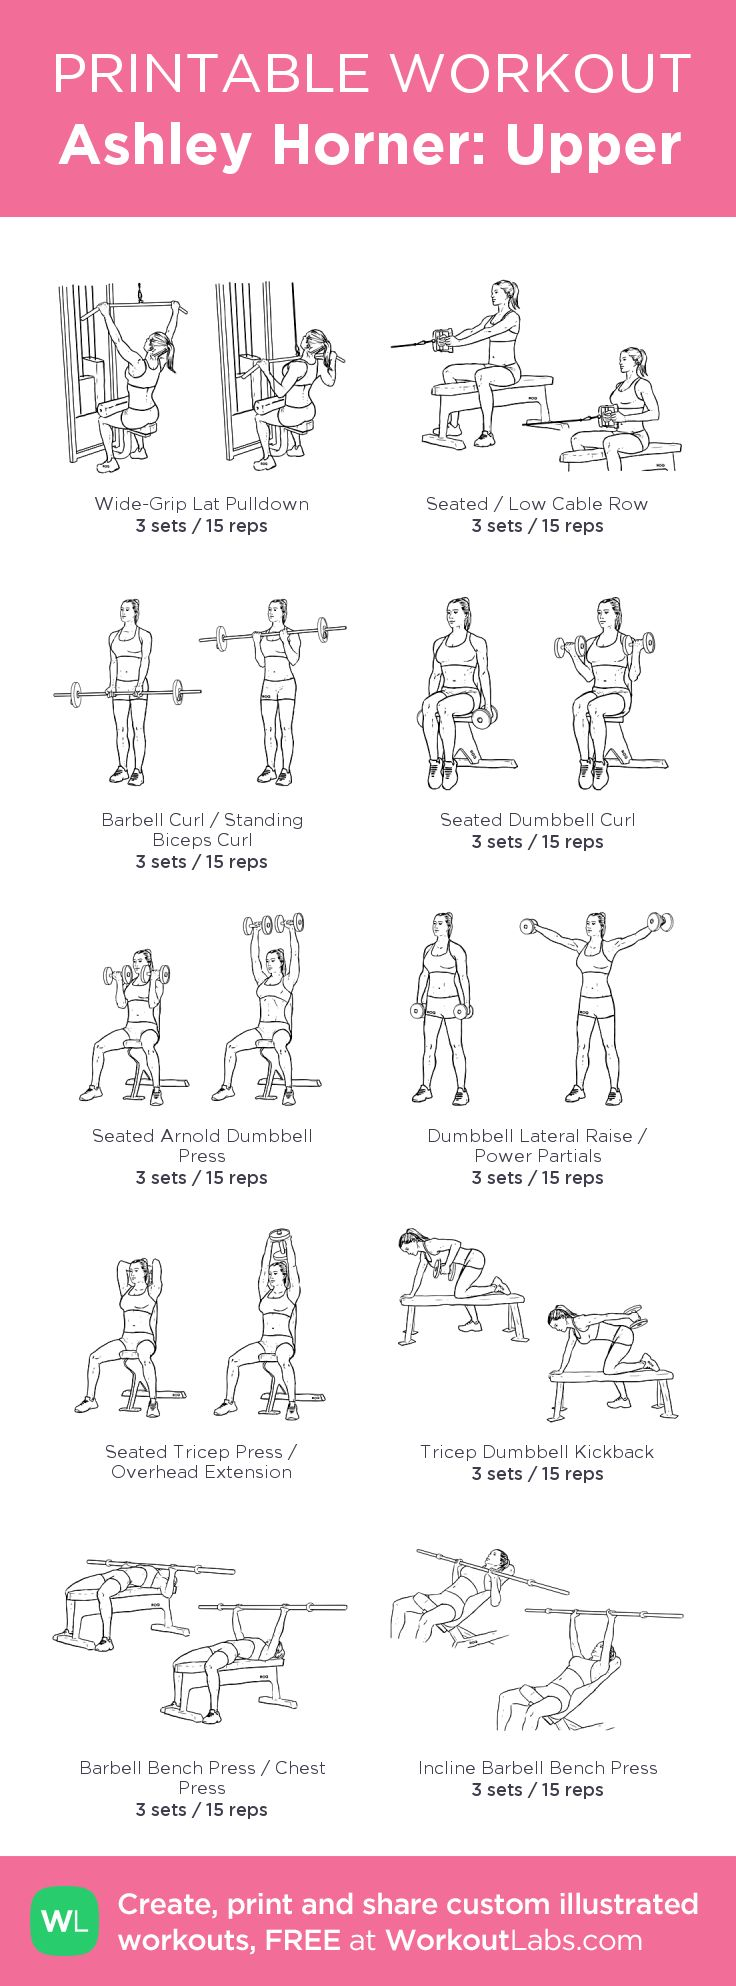 Ashley Horner: Upper: my visual workout created at ...